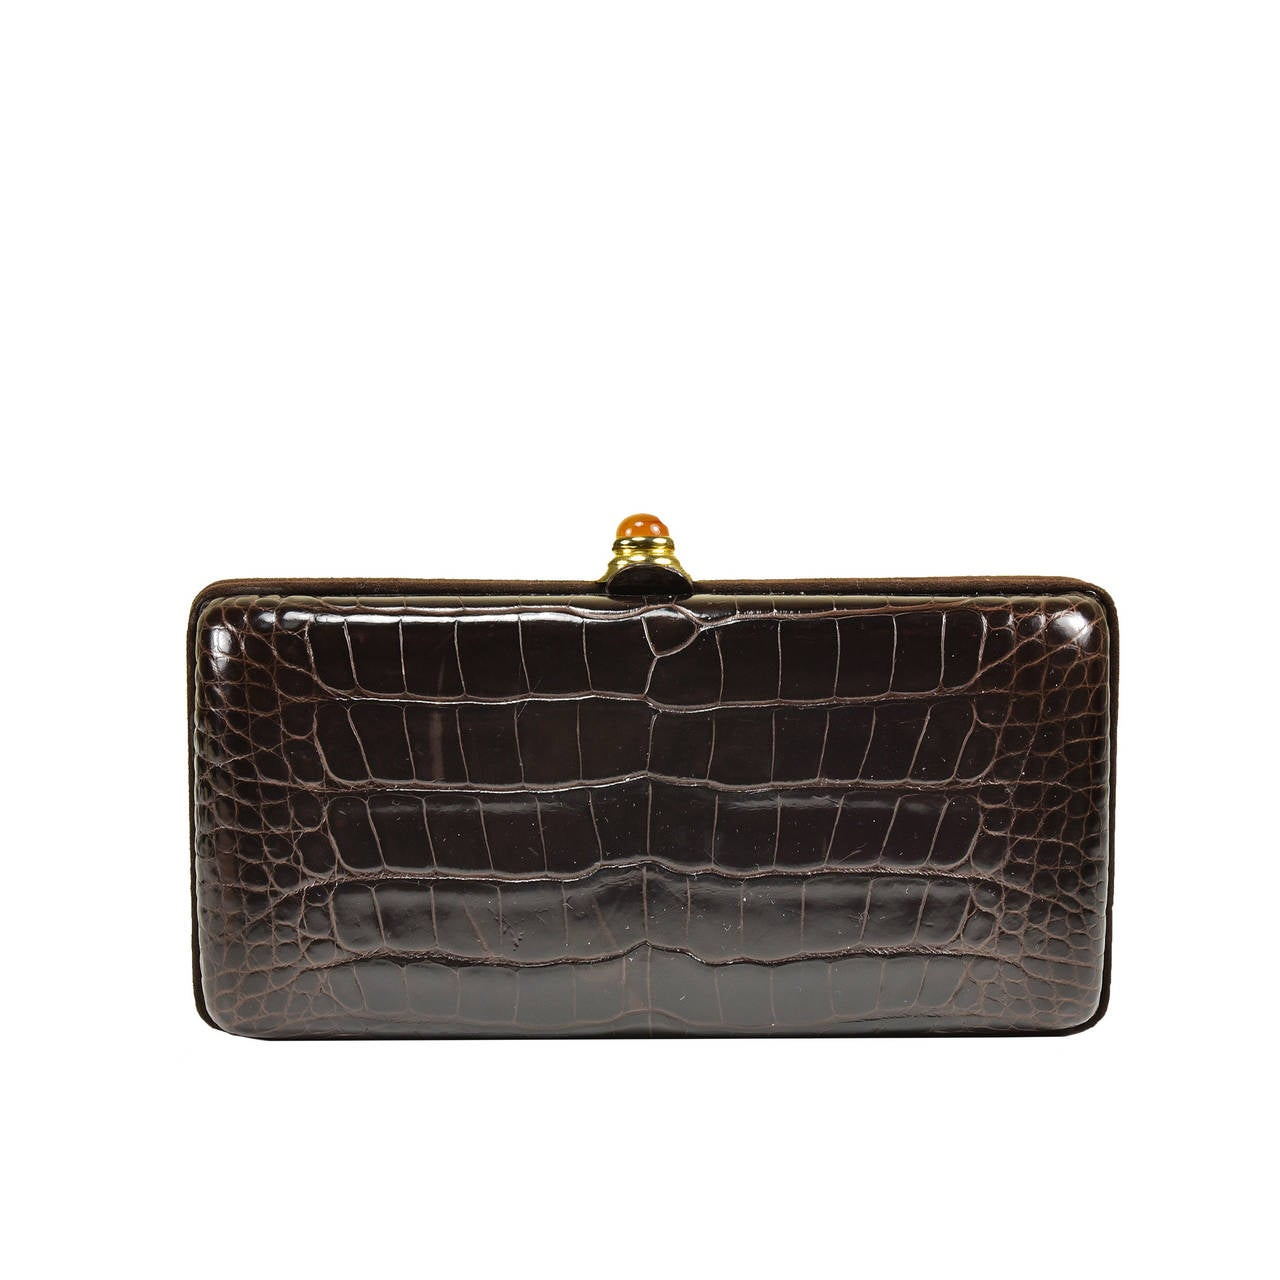 Classic Oscar de la Renta Alligator Clutch For Sale